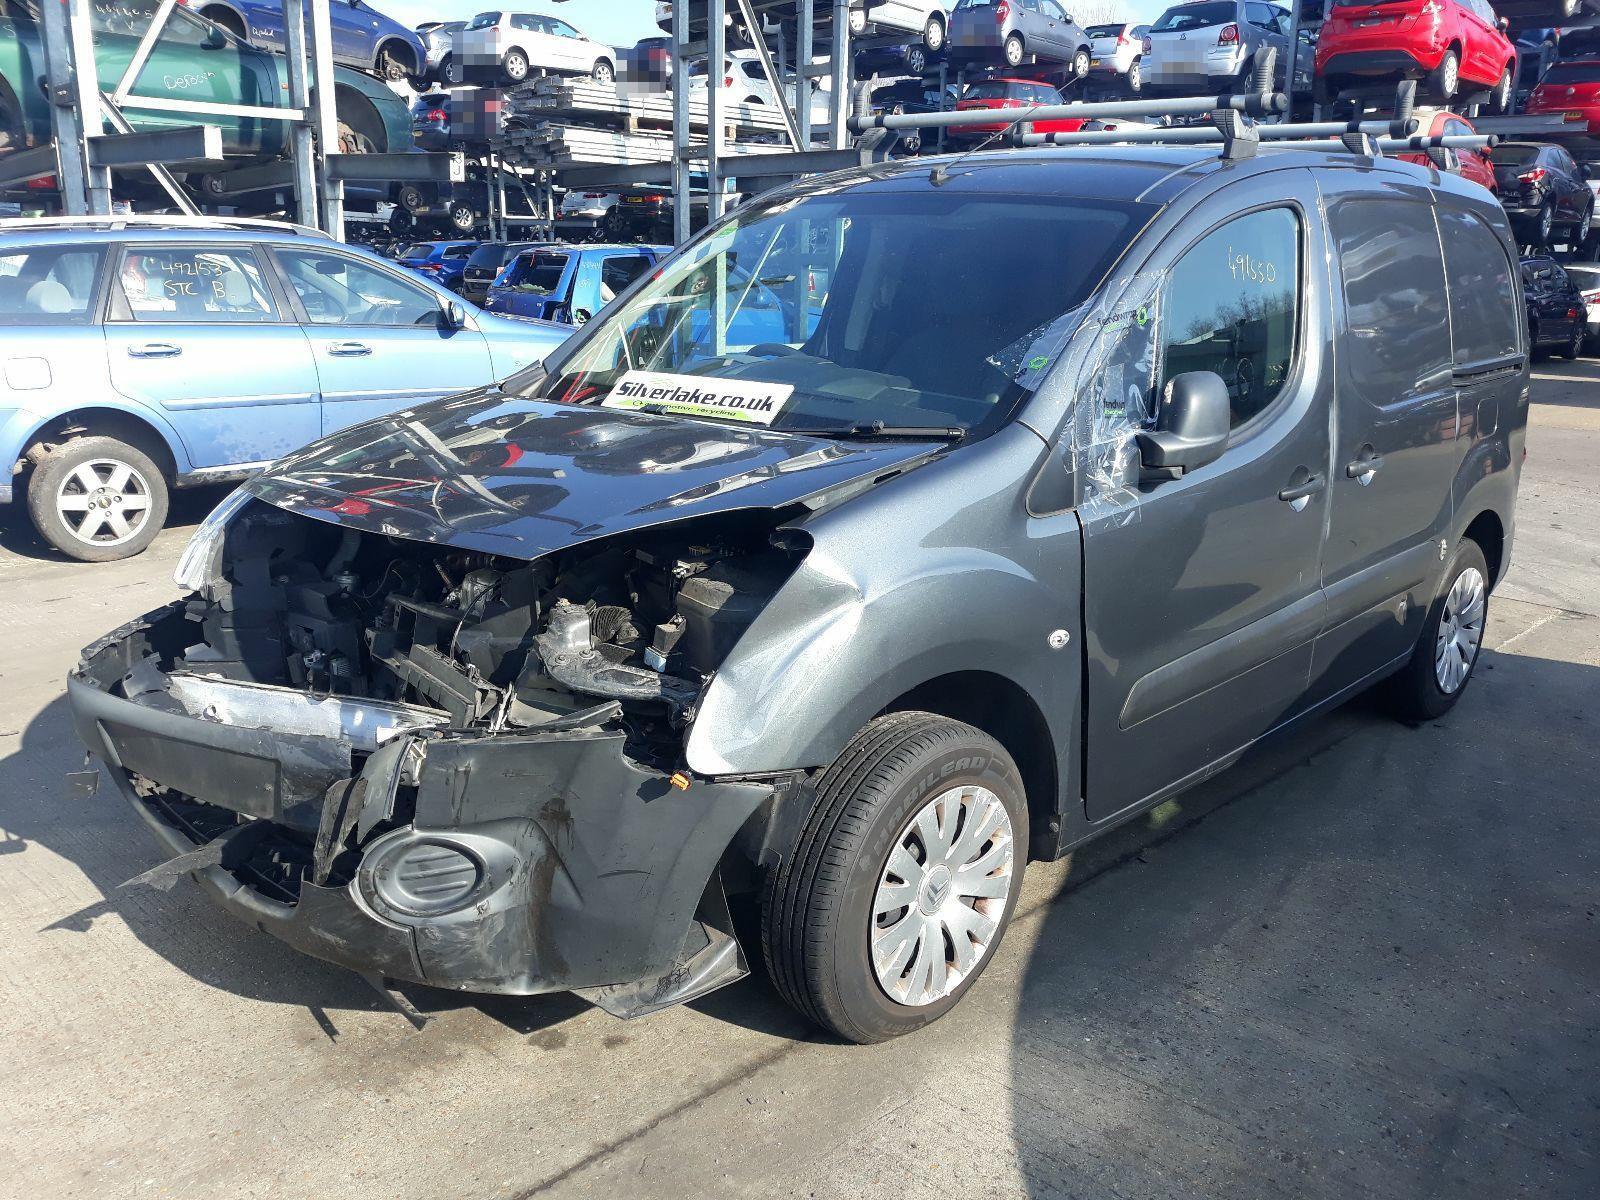 Citroen Berlingo 2008 To 2015 L1 625 ENTERPRISE 75 Van